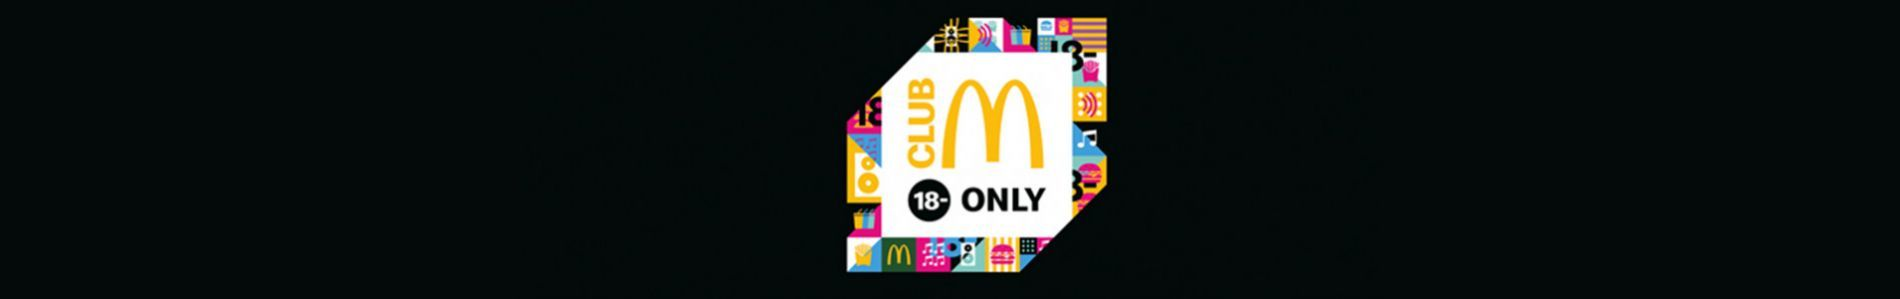 Spinnin' Records x McDonald's presents: Club McDonald's